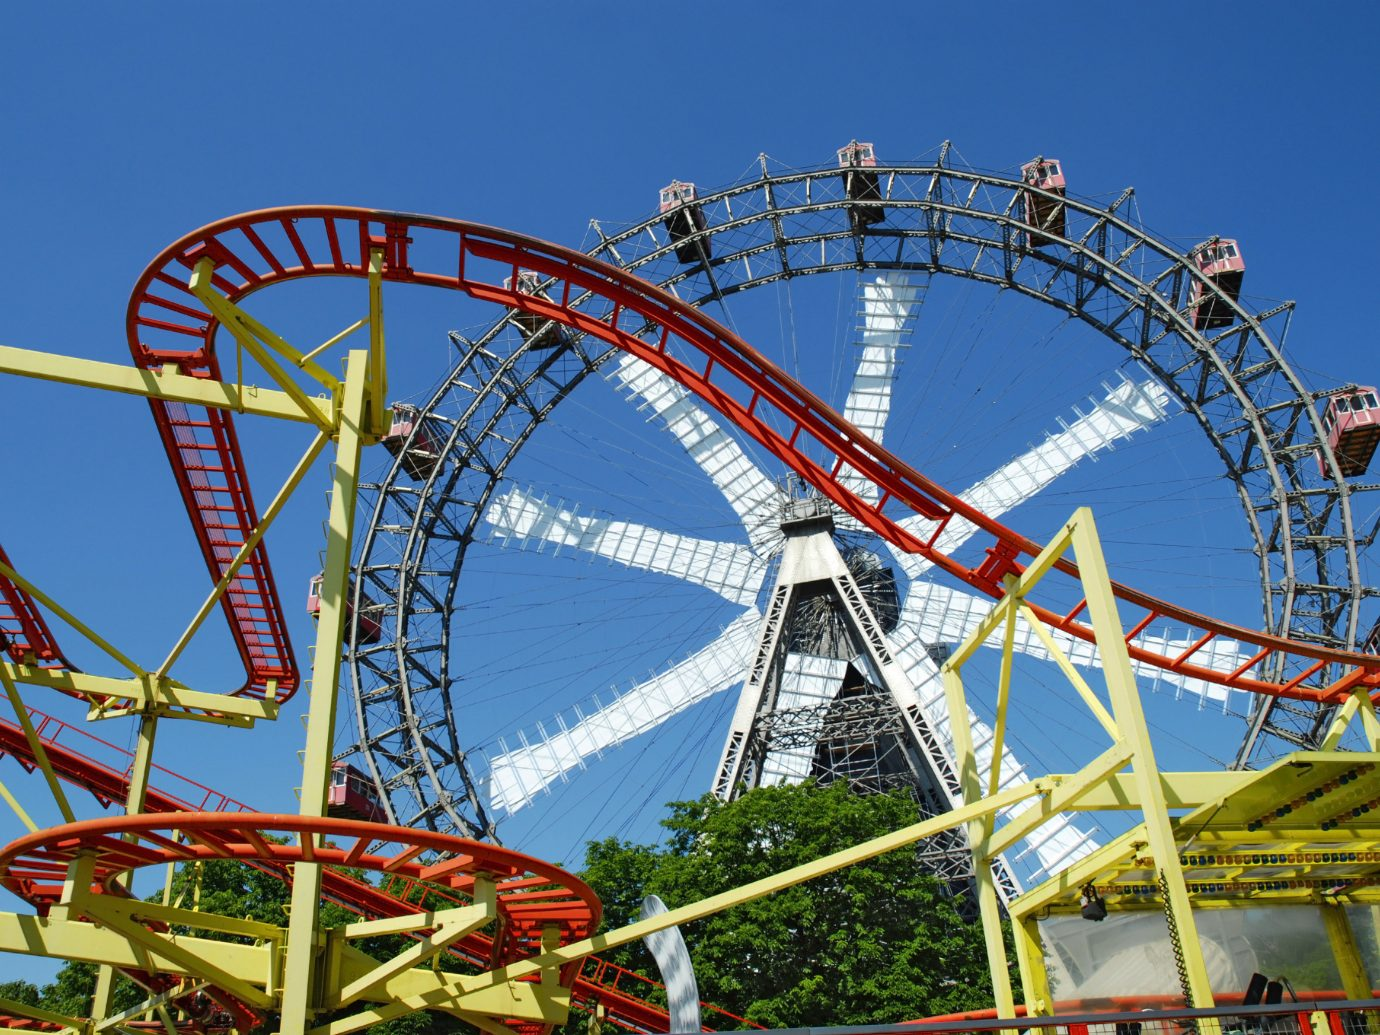 view of rollercoaster and ferris wheel in Prater park in Vienna